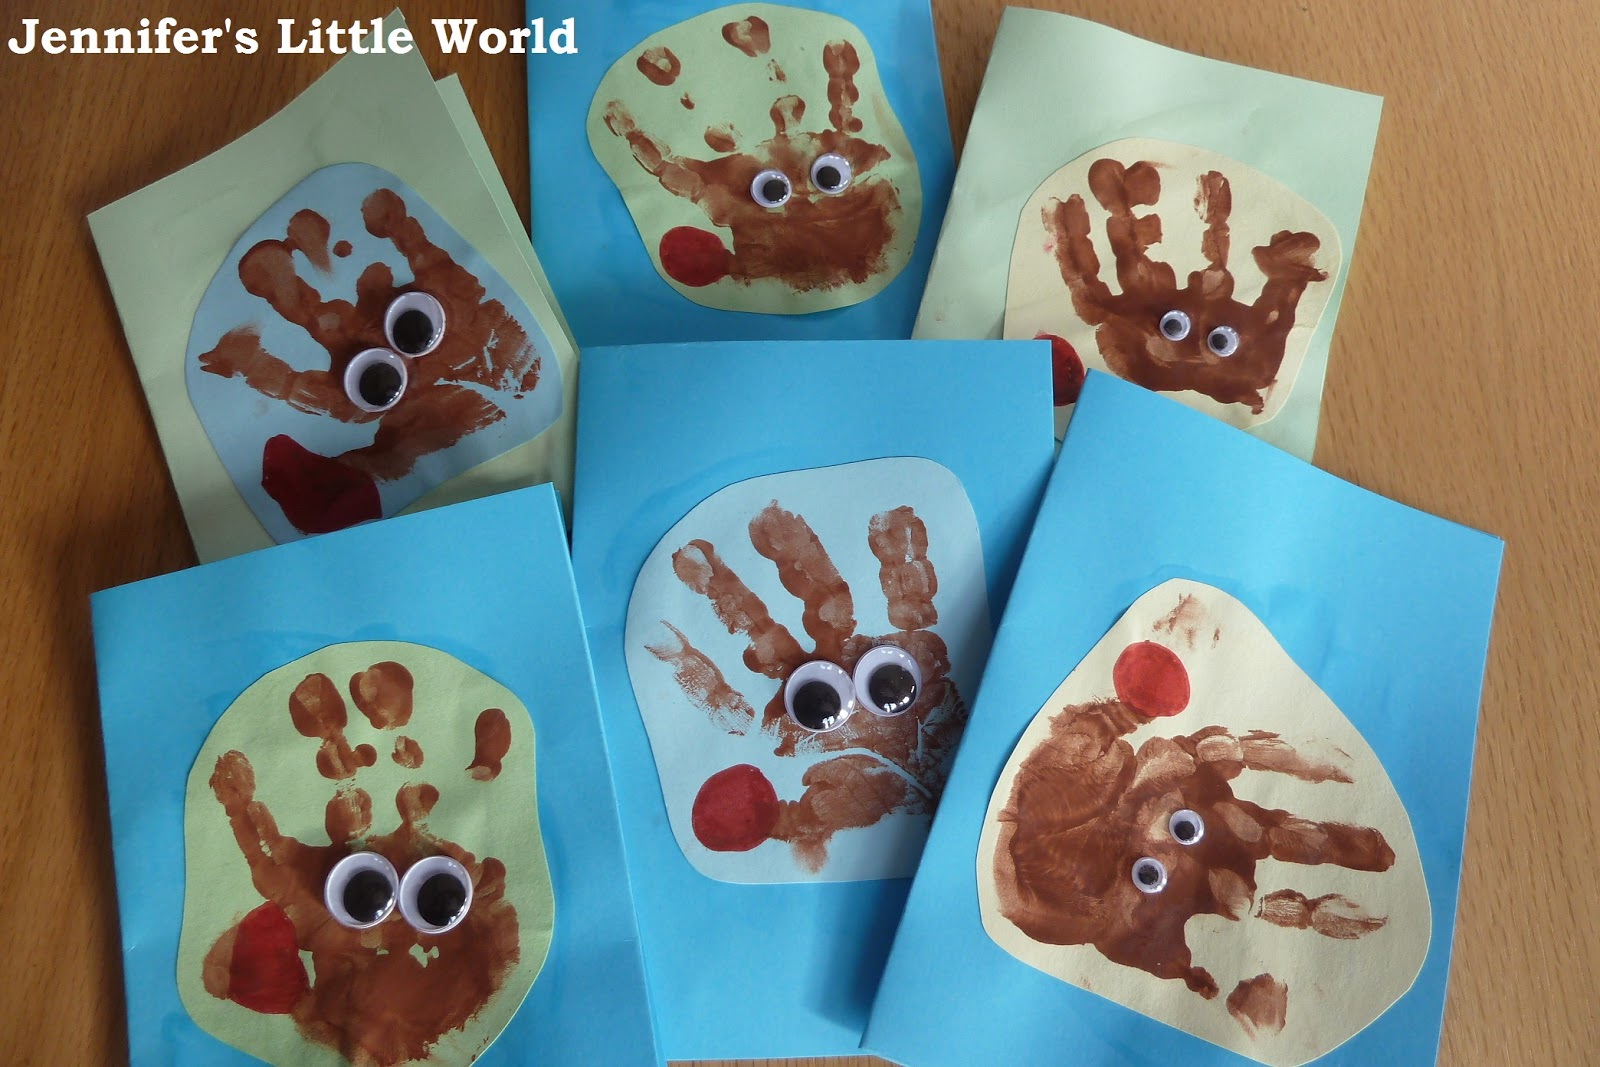 Jennifers Little World Blog Parenting Craft And Travel Reindeer Simple Circuits For Kids Http Wwwmakingboysmencom 2013 04 Handprint Christmas Cards